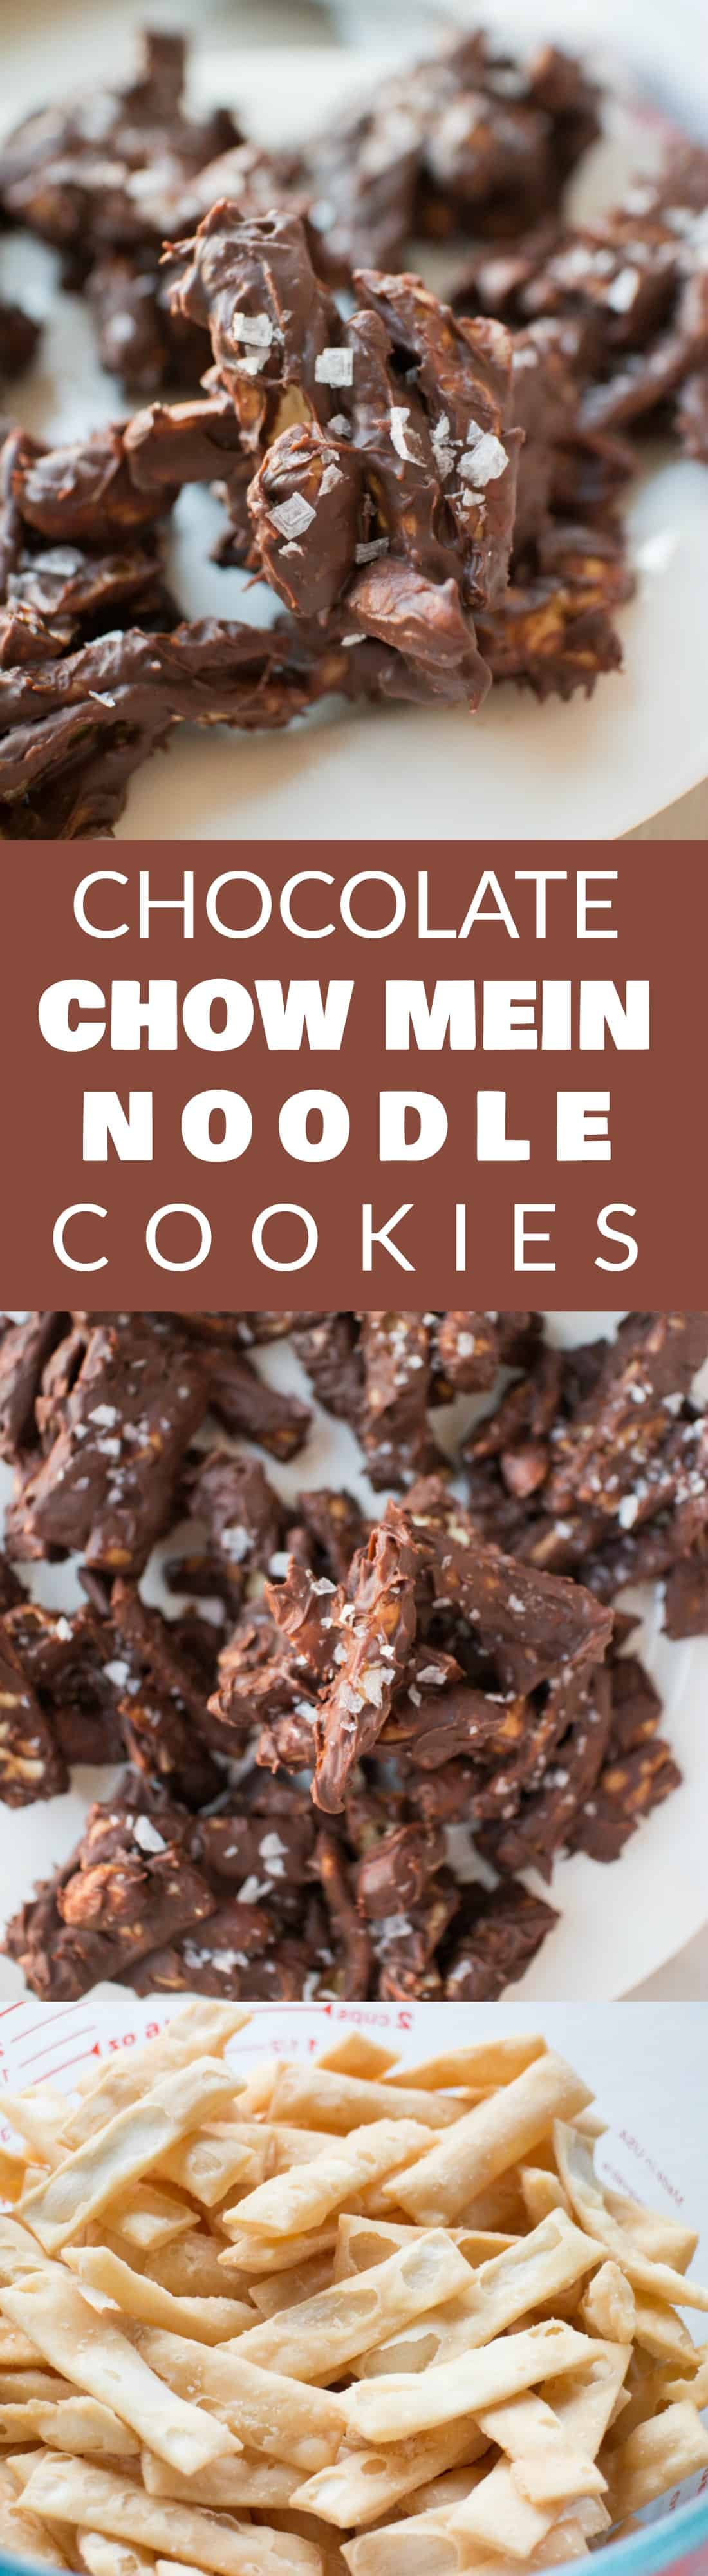 Easy Chocolate Chow Mein Noodle Cookies recipe that only requires 4 ingredients! They're simple to make and you only need chocolate chips, peanut butter chips, chow mein noodles and peanuts! Make them for dessert or a alternative to Christmas cookies!